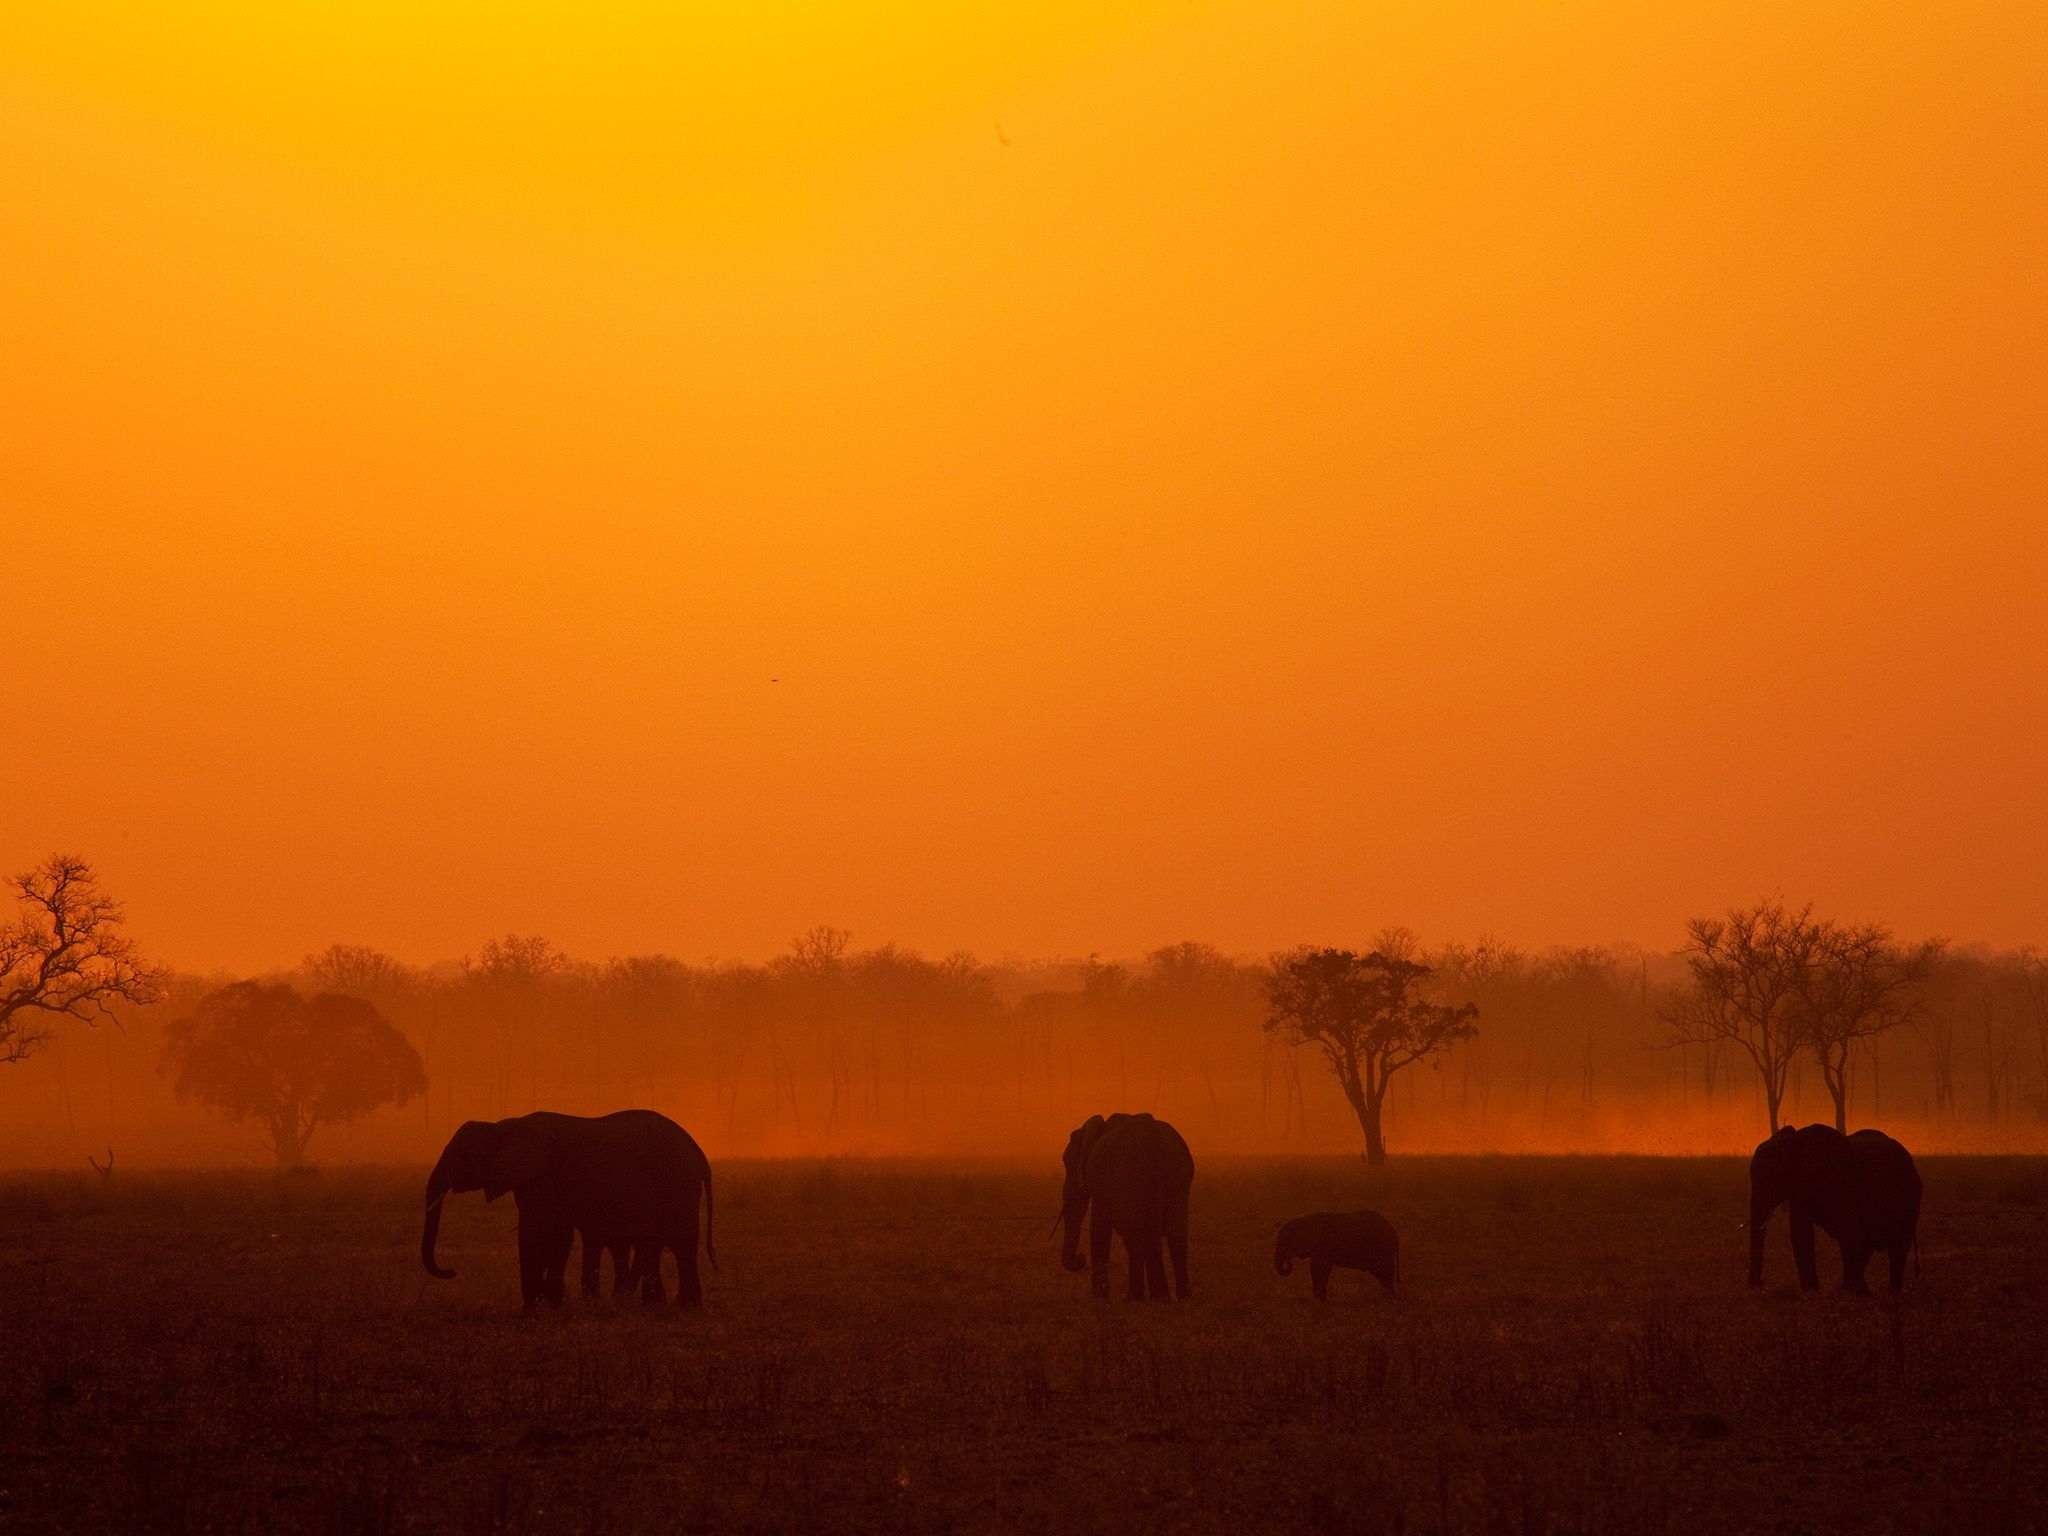 Elephant herd silhouette in sunset (landscape). Elephant herds tend to head for water during the... [Photo of the day - October 2014]